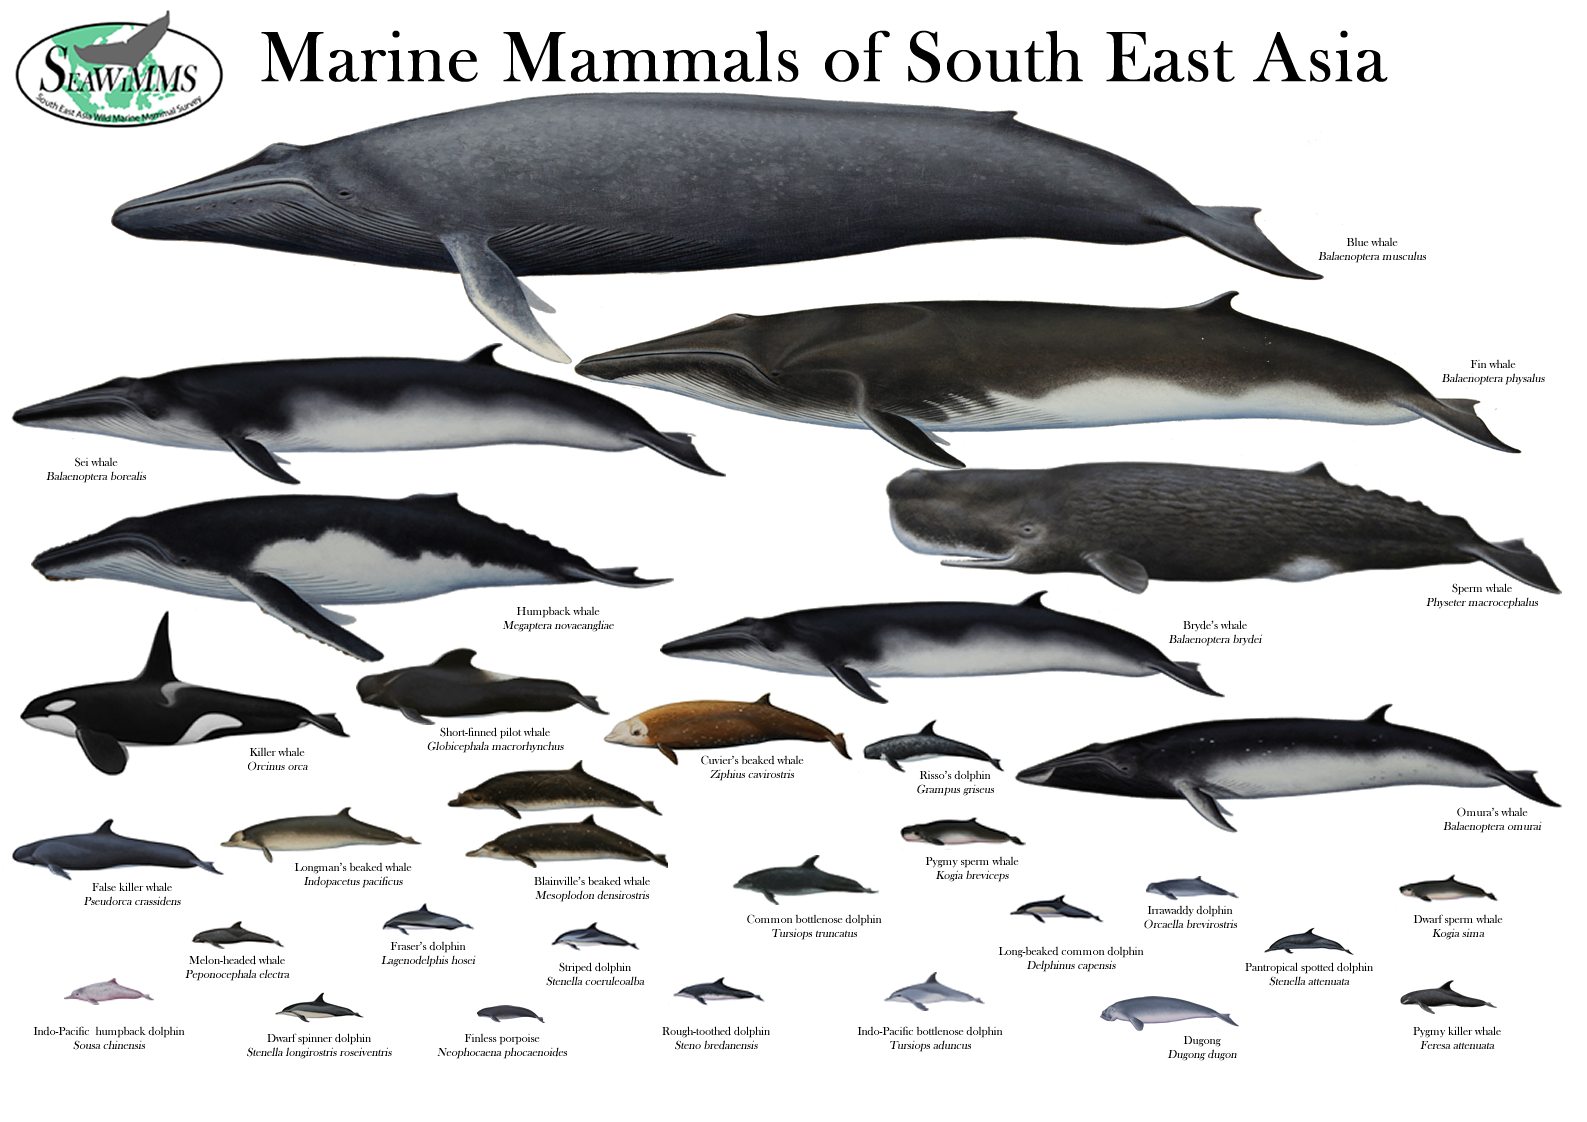 Whales of SE Asia | Whales - Ocean Leviathans | Pinterest